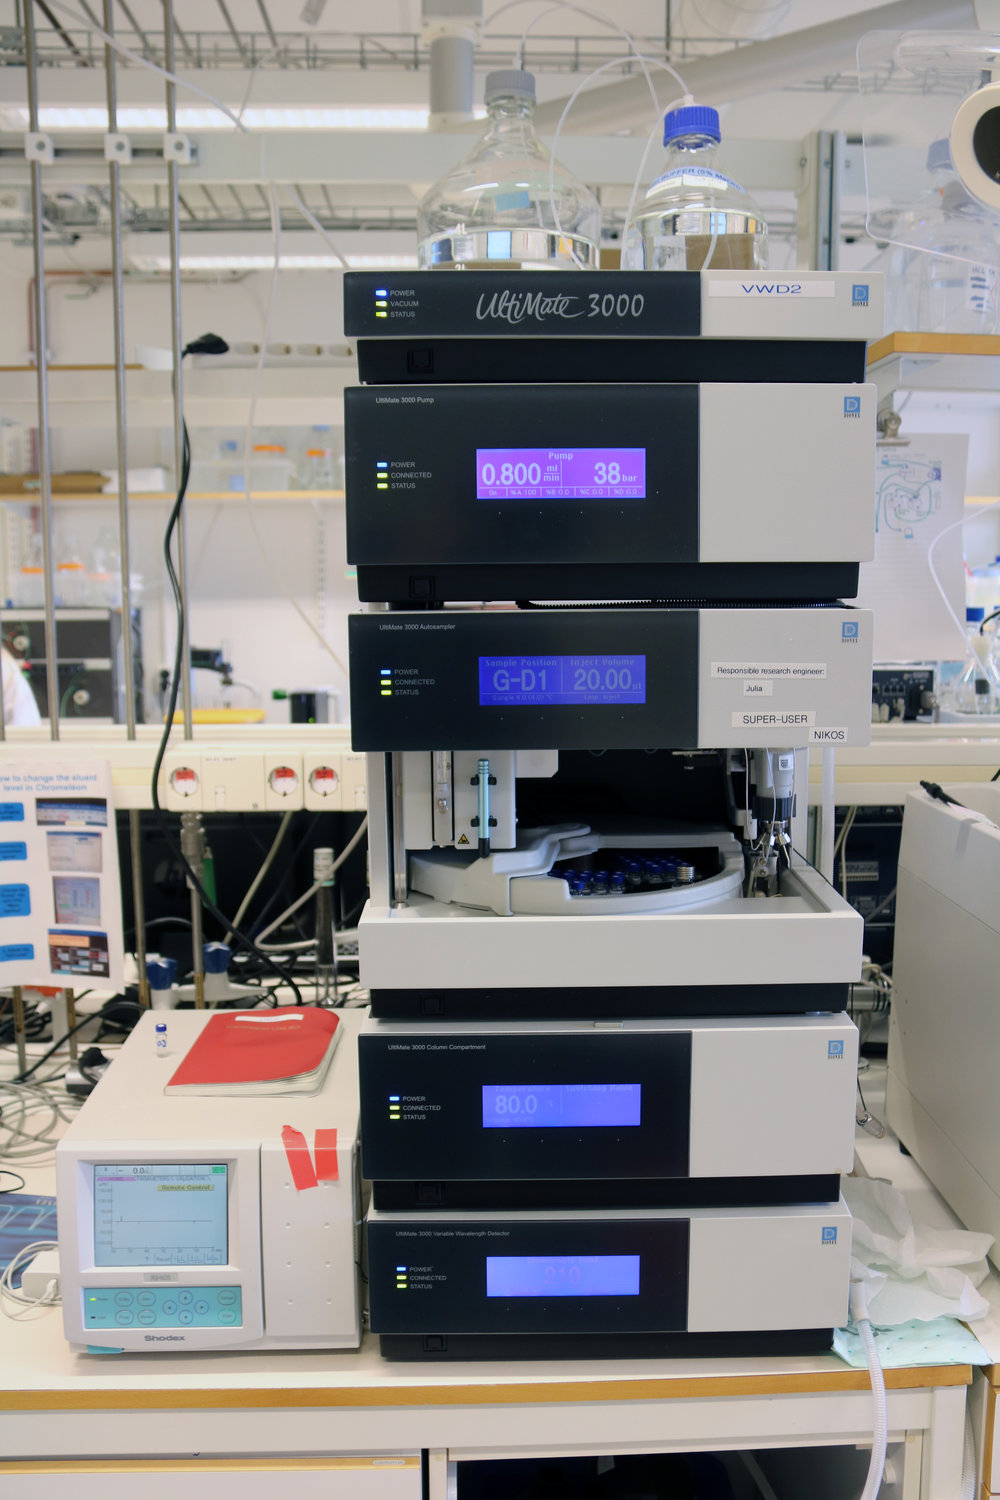 One of our high-pressure liquid chromatography (HPLC) machines. Affectionately known as Malcolm.